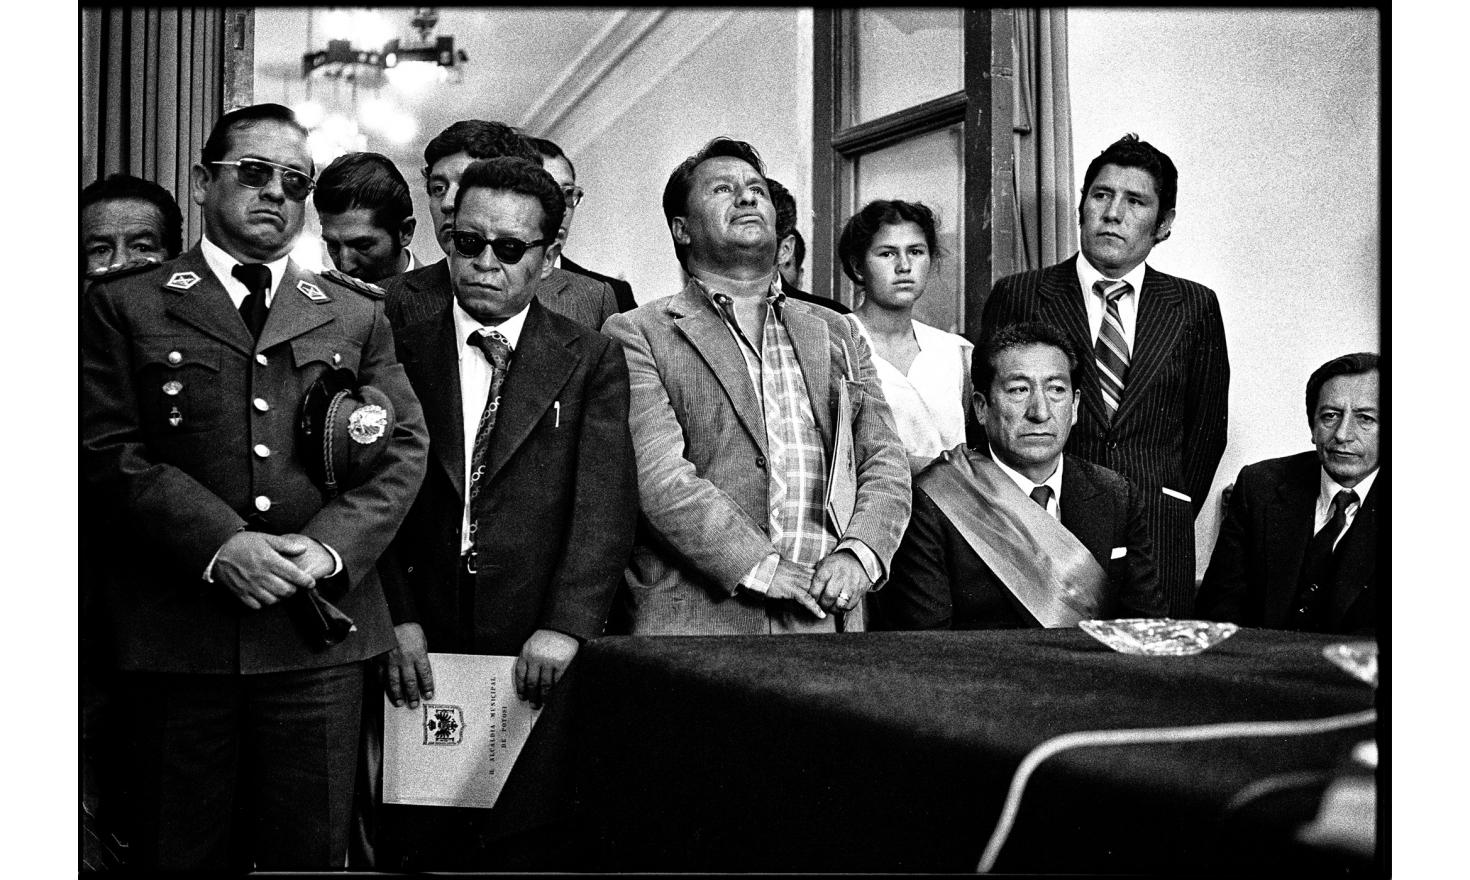 Officials listening to the newly elected president of Bolivia, Hernan Slies Zuazo, for his first visit as president. Potosi, Bolivia. November 10, 1982